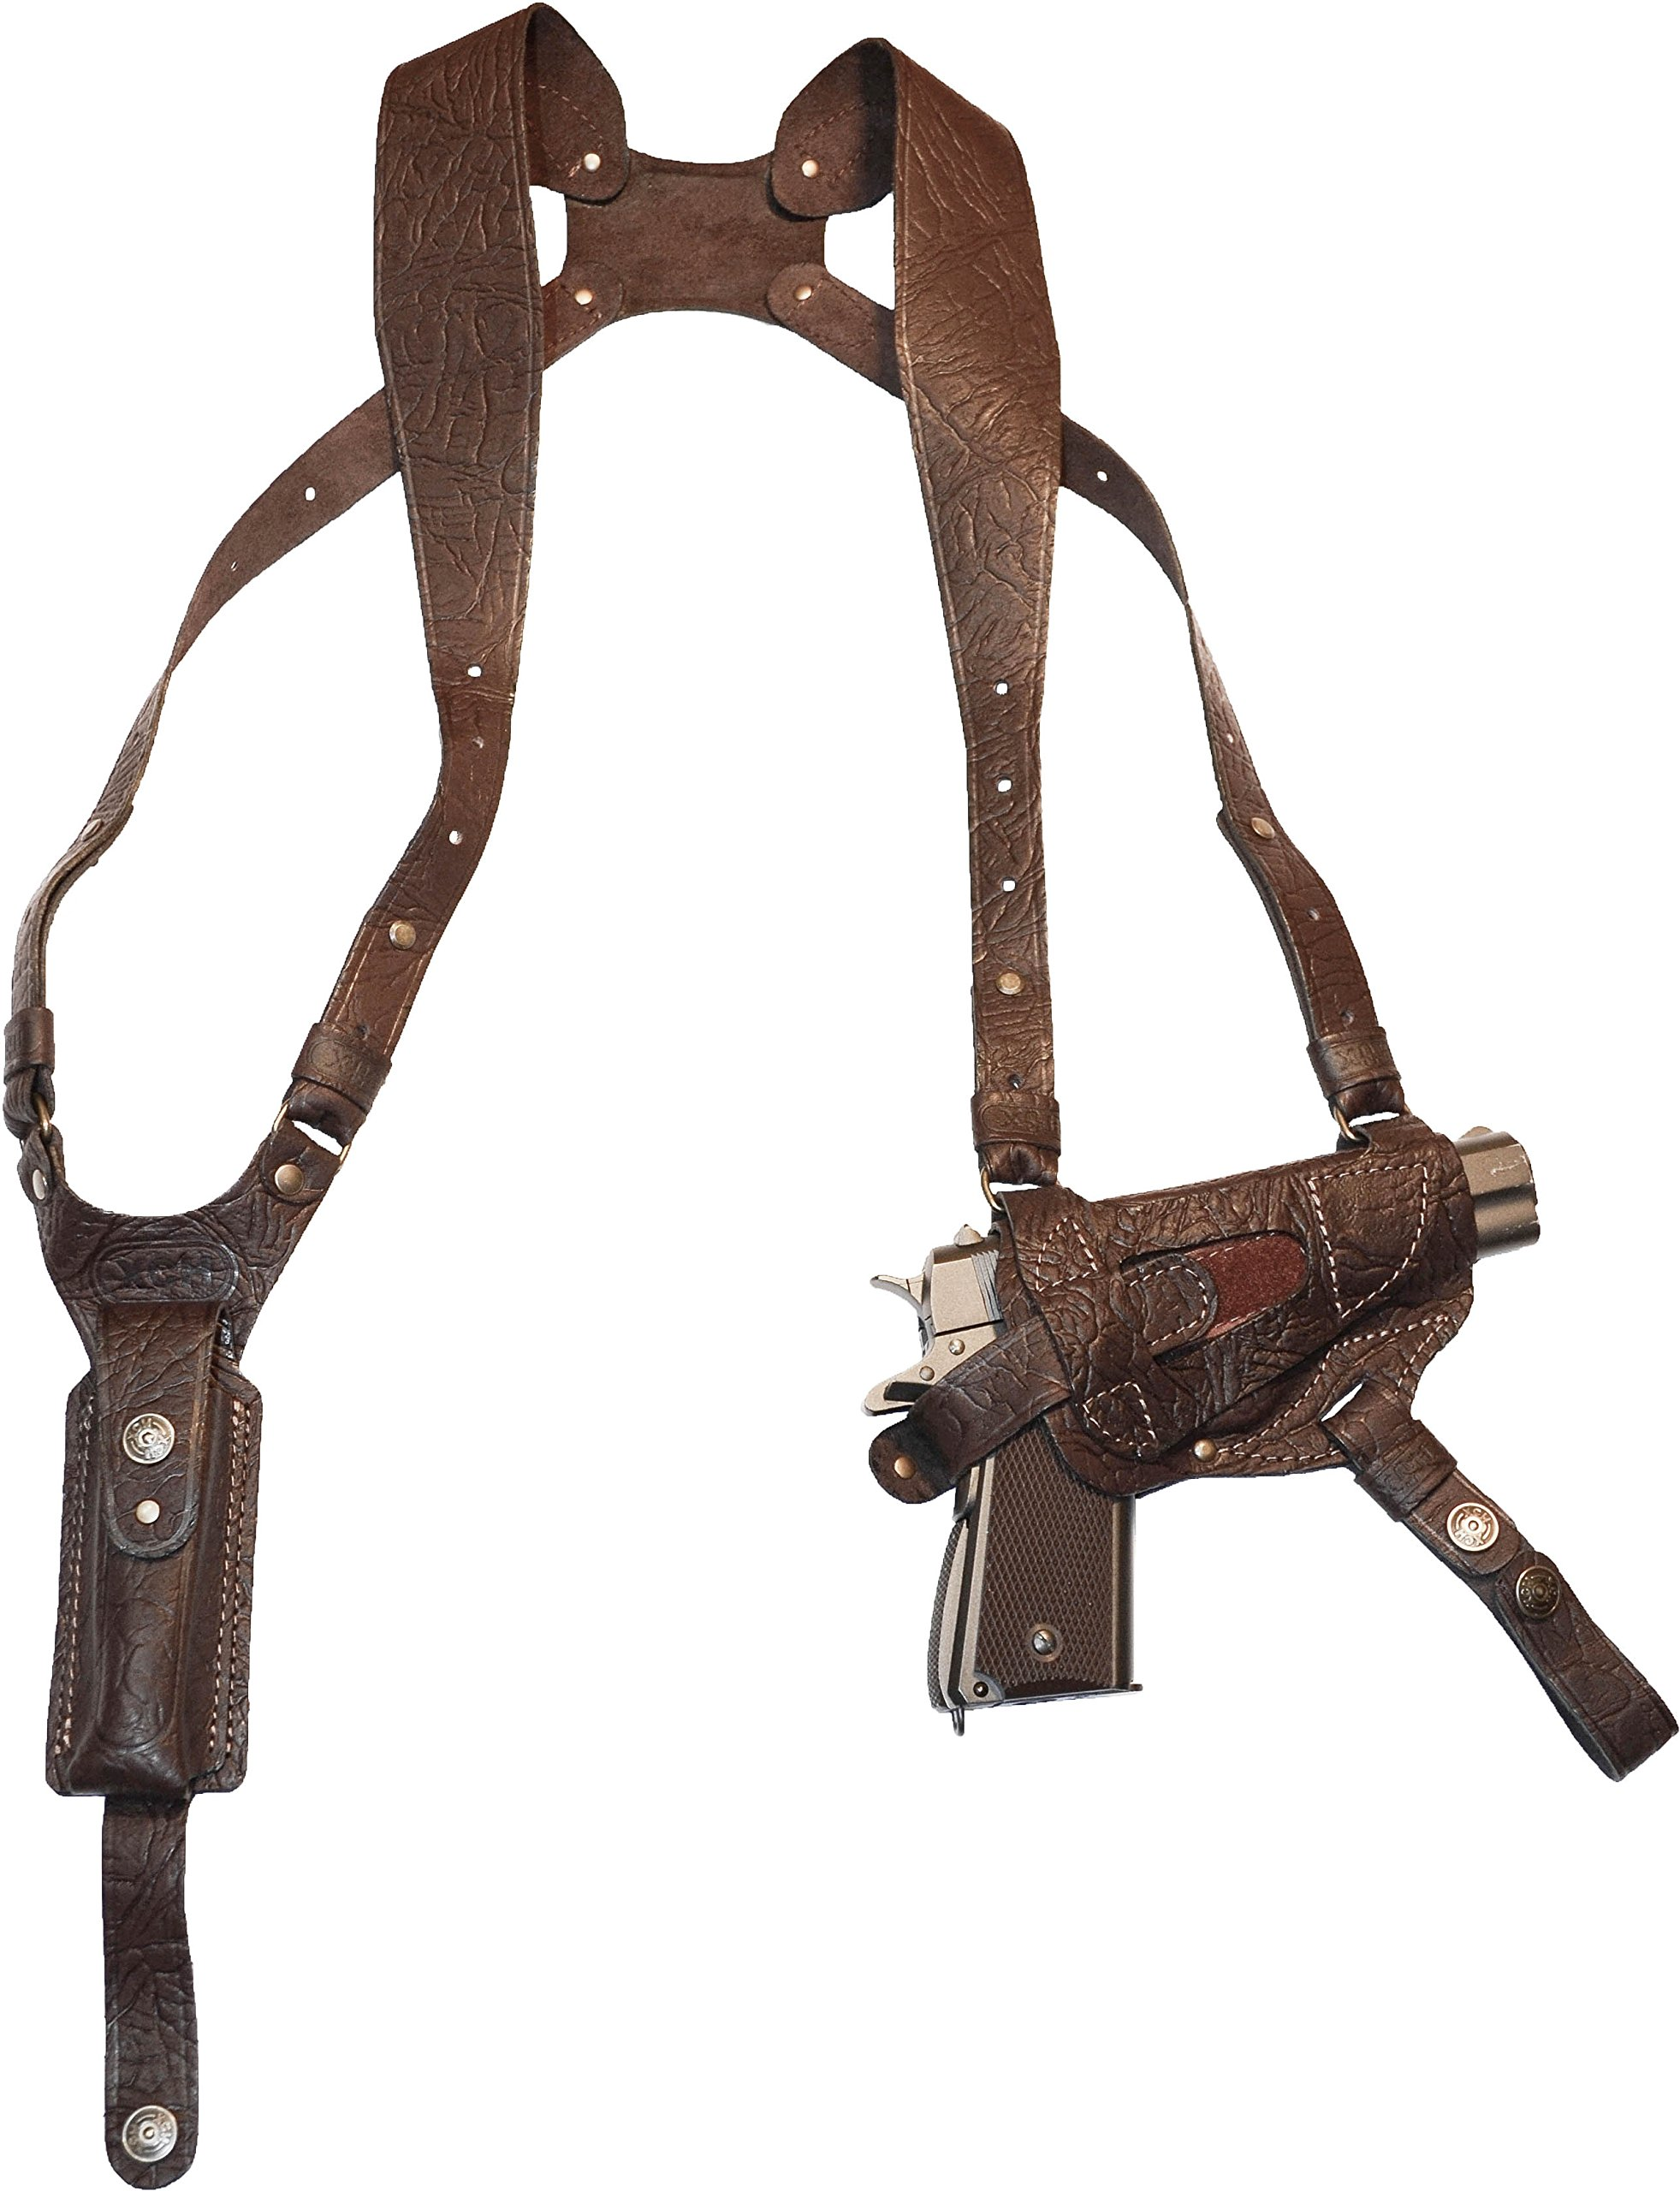 Colt 1911 Shoulder Holster Top Deals & Lowest Price